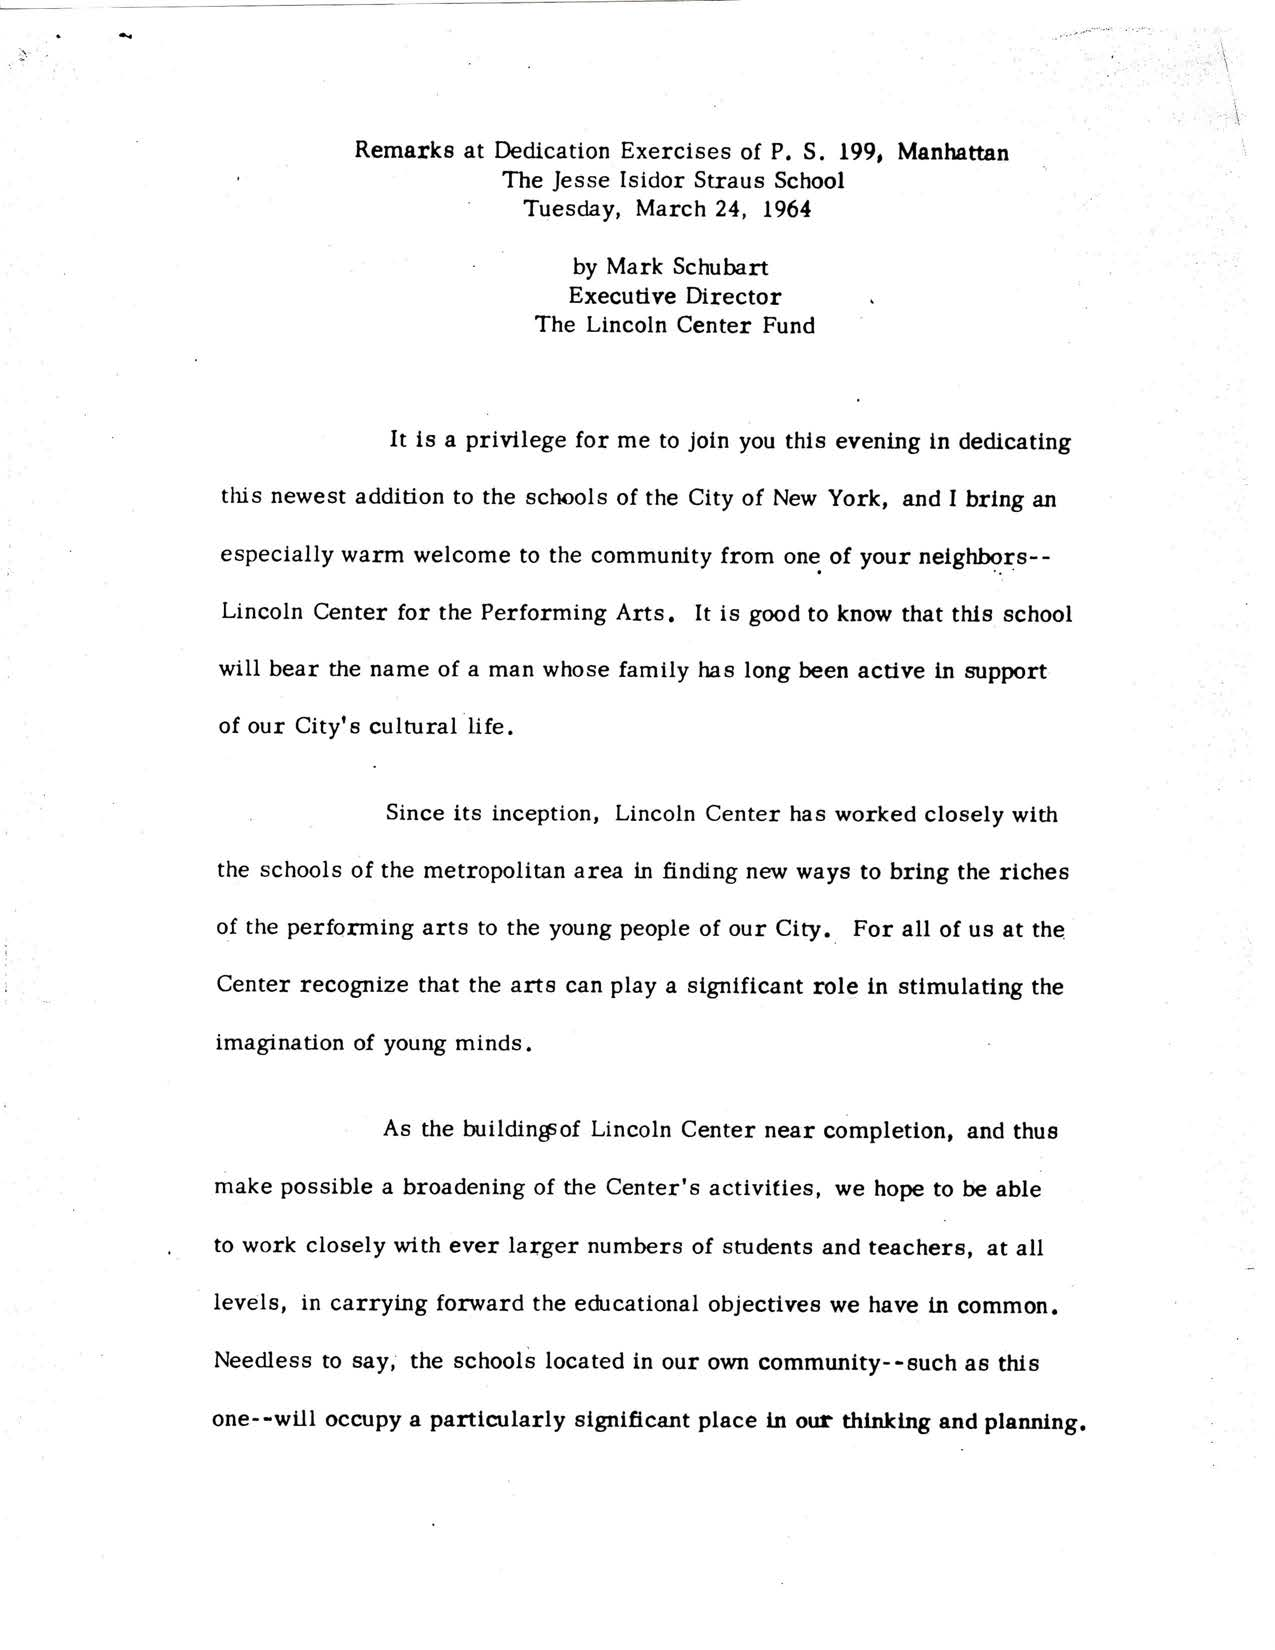 Remarks by Mark Schubart - Lincoln Center Fund - 24 March 1964